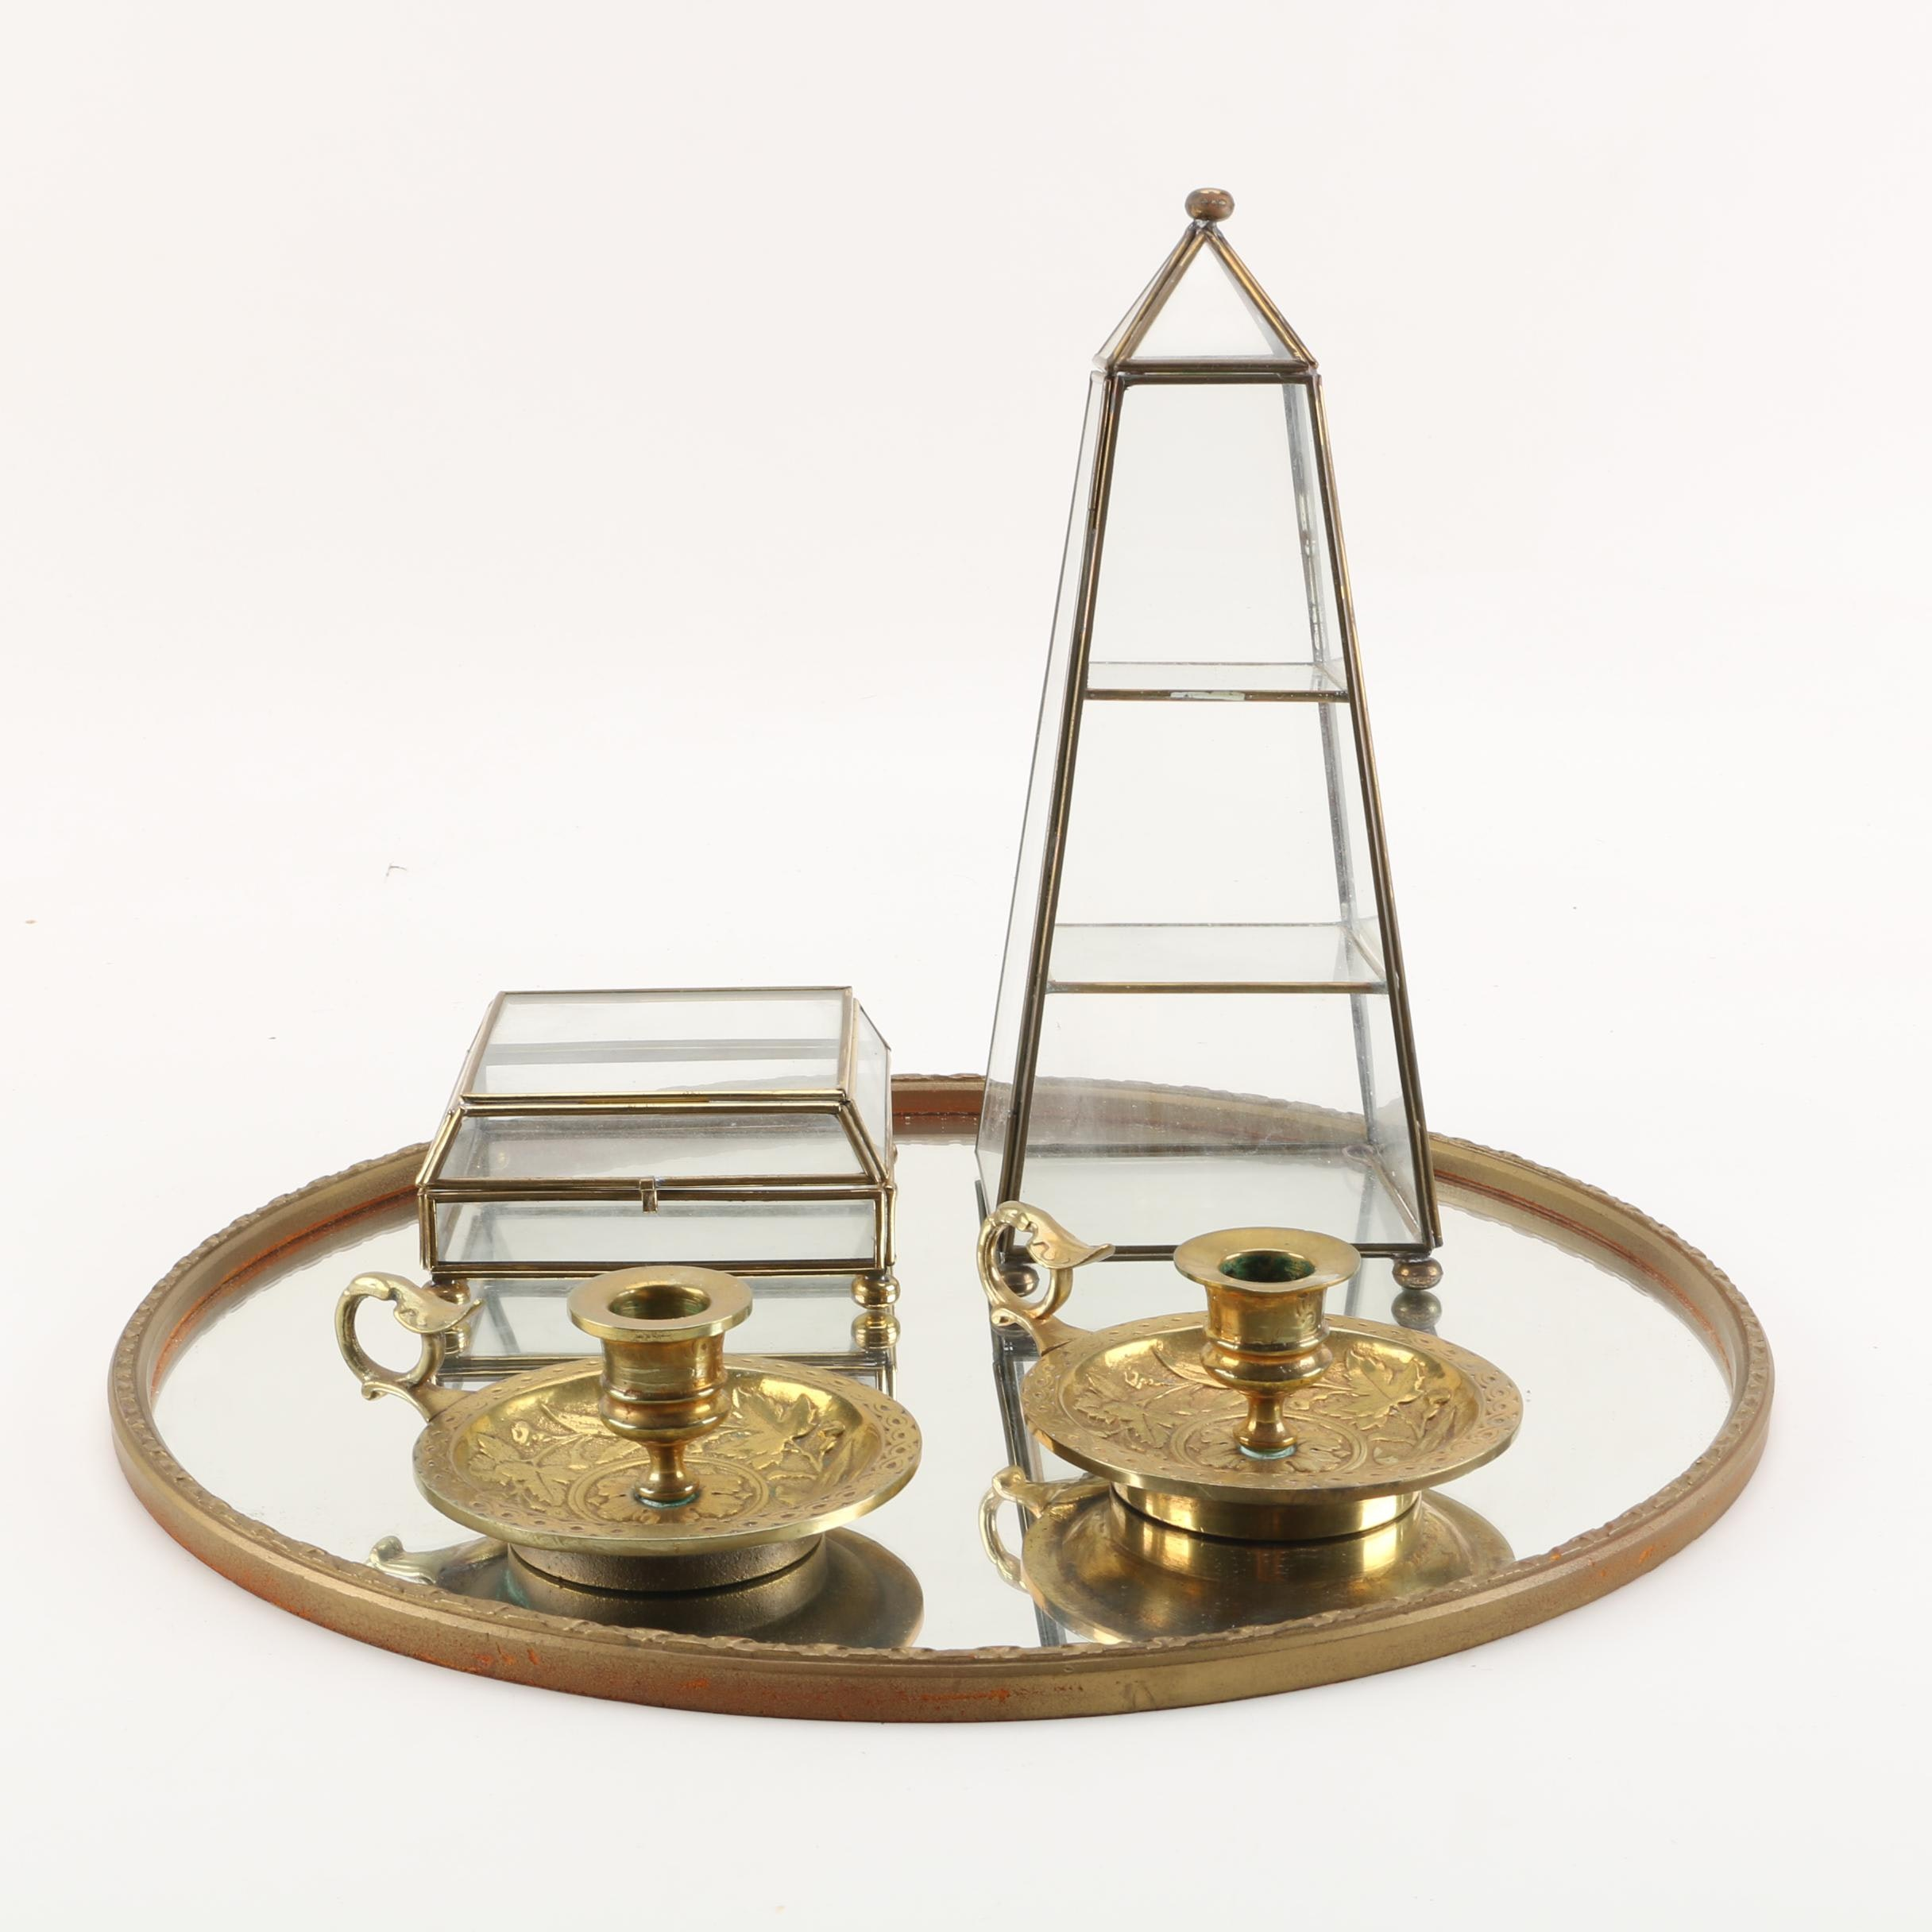 Brass Chambersticks with Mirrored Vanity Tray and Glass Trinket Boxes